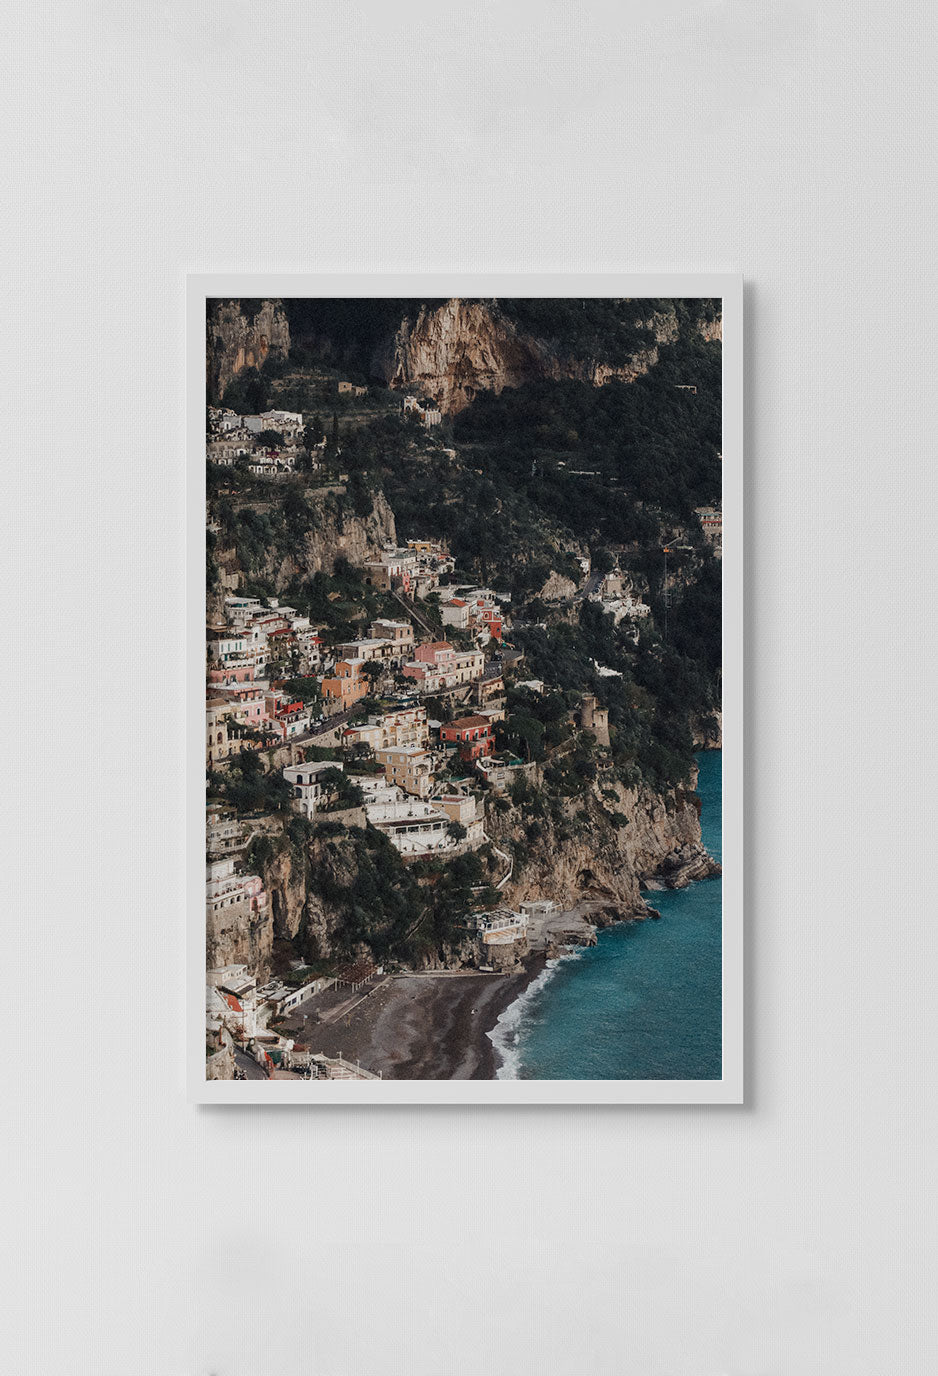 image of homes on beach looking over cliff side in white frame on white wall.